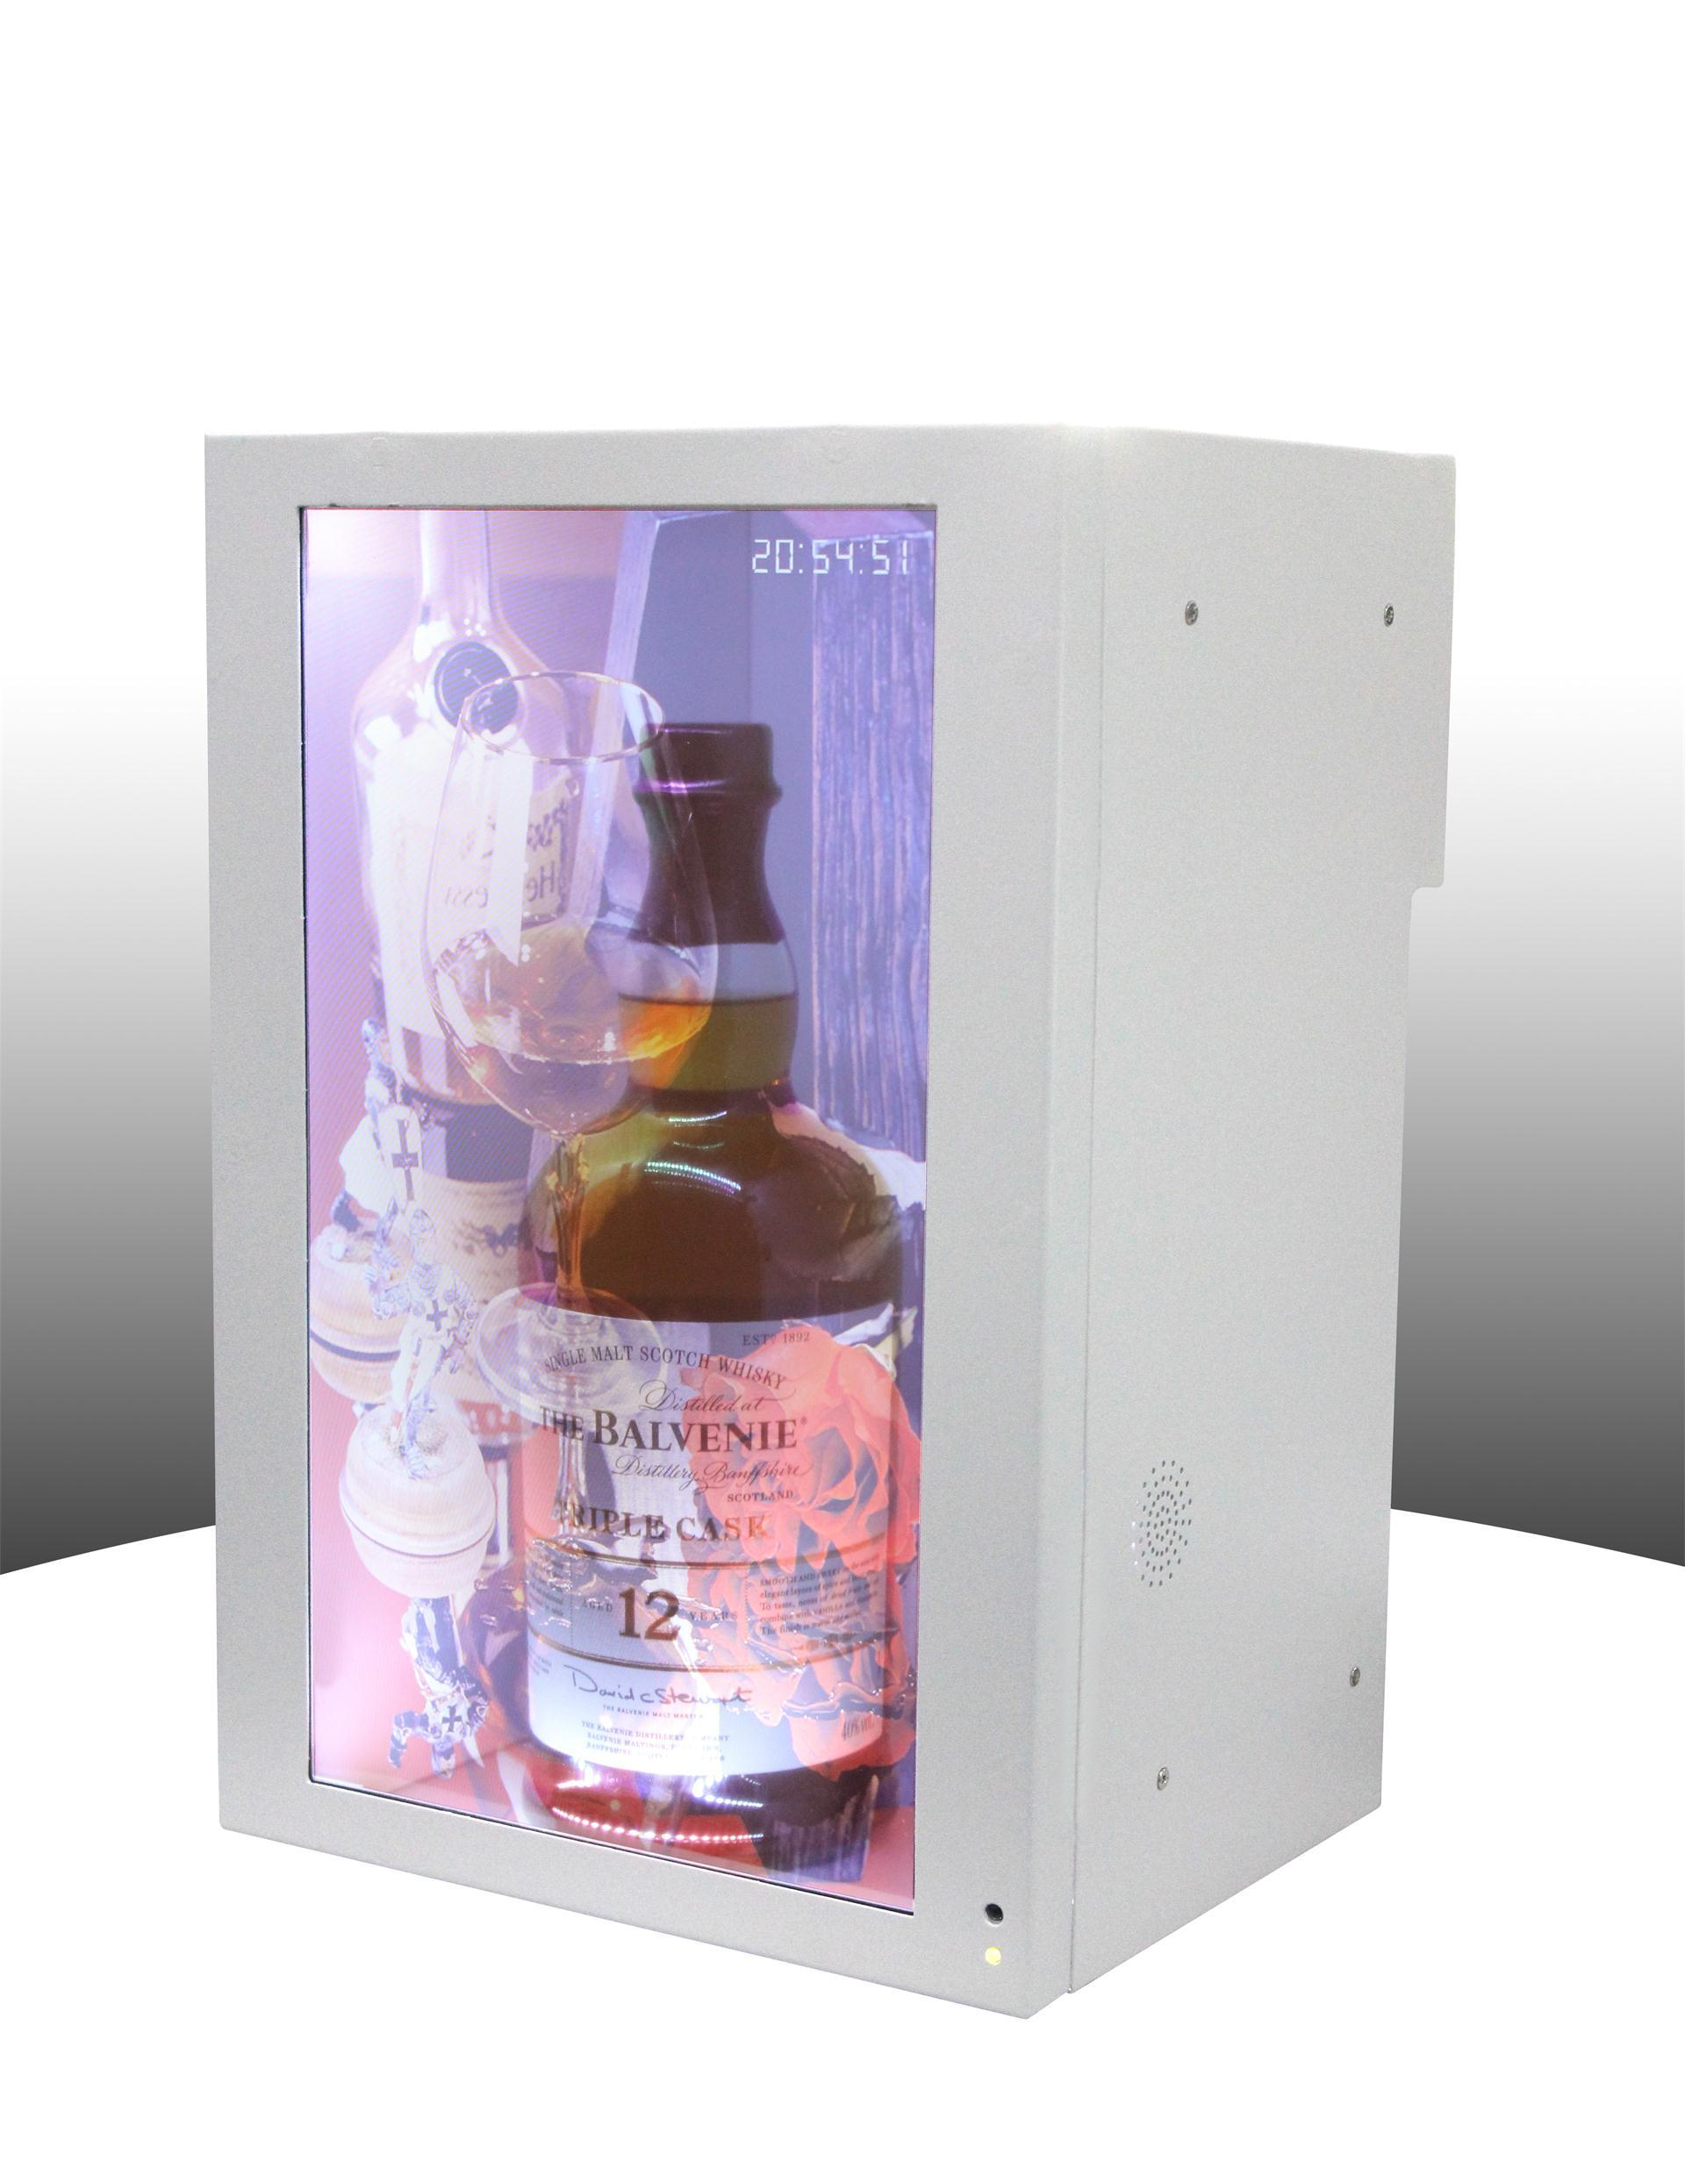 Transparent Advertising Display Box for Luxury Exhibition